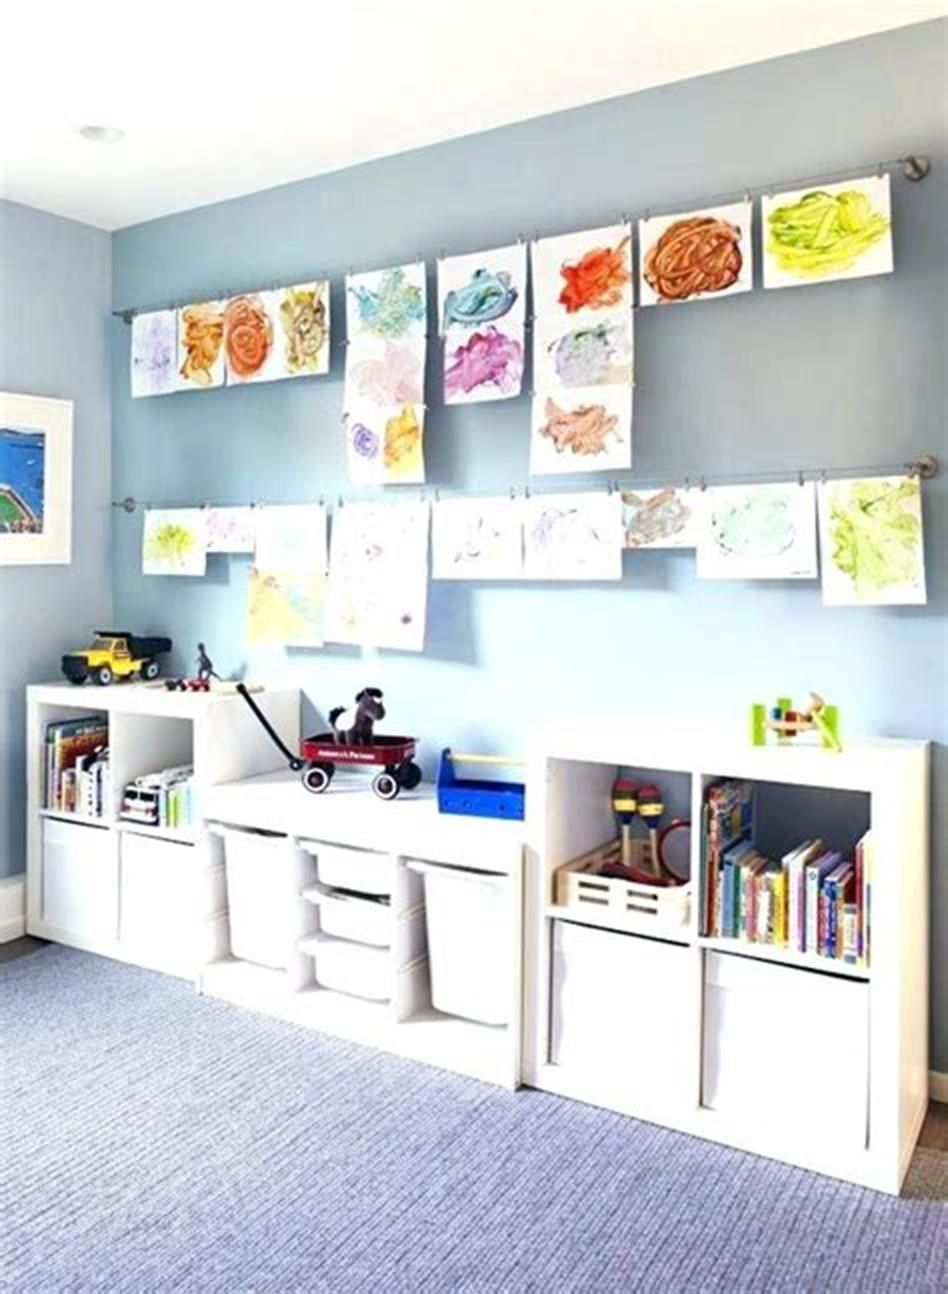 30 Best Cheap Ikea Kids Playroom Ideas For 2019 Viralinspirations Kids Room Organization Playroom Storage Kid Spaces